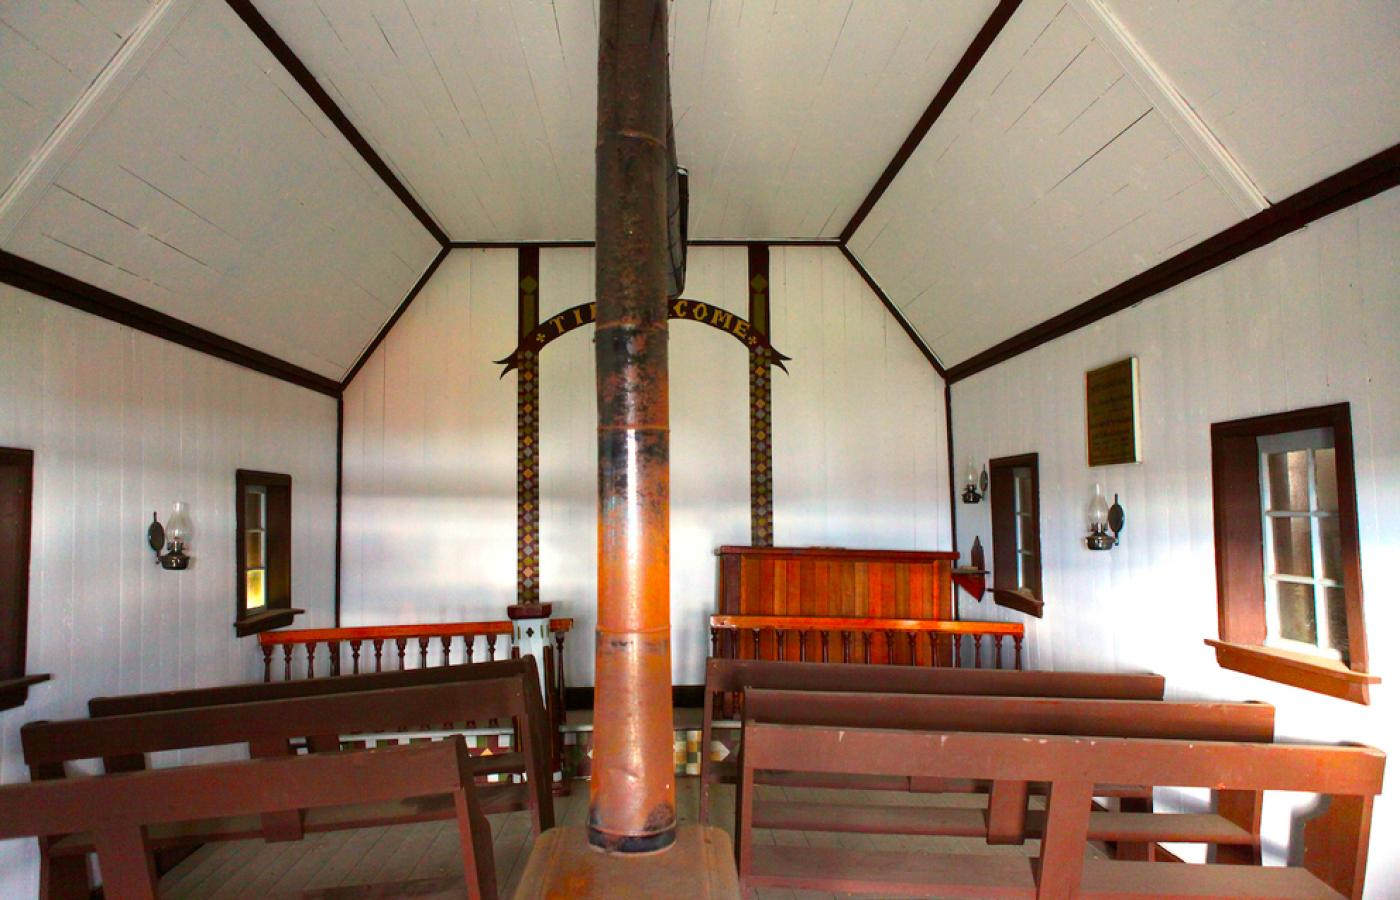 The Old Anglican Church in Tulita is a site not to be missed.